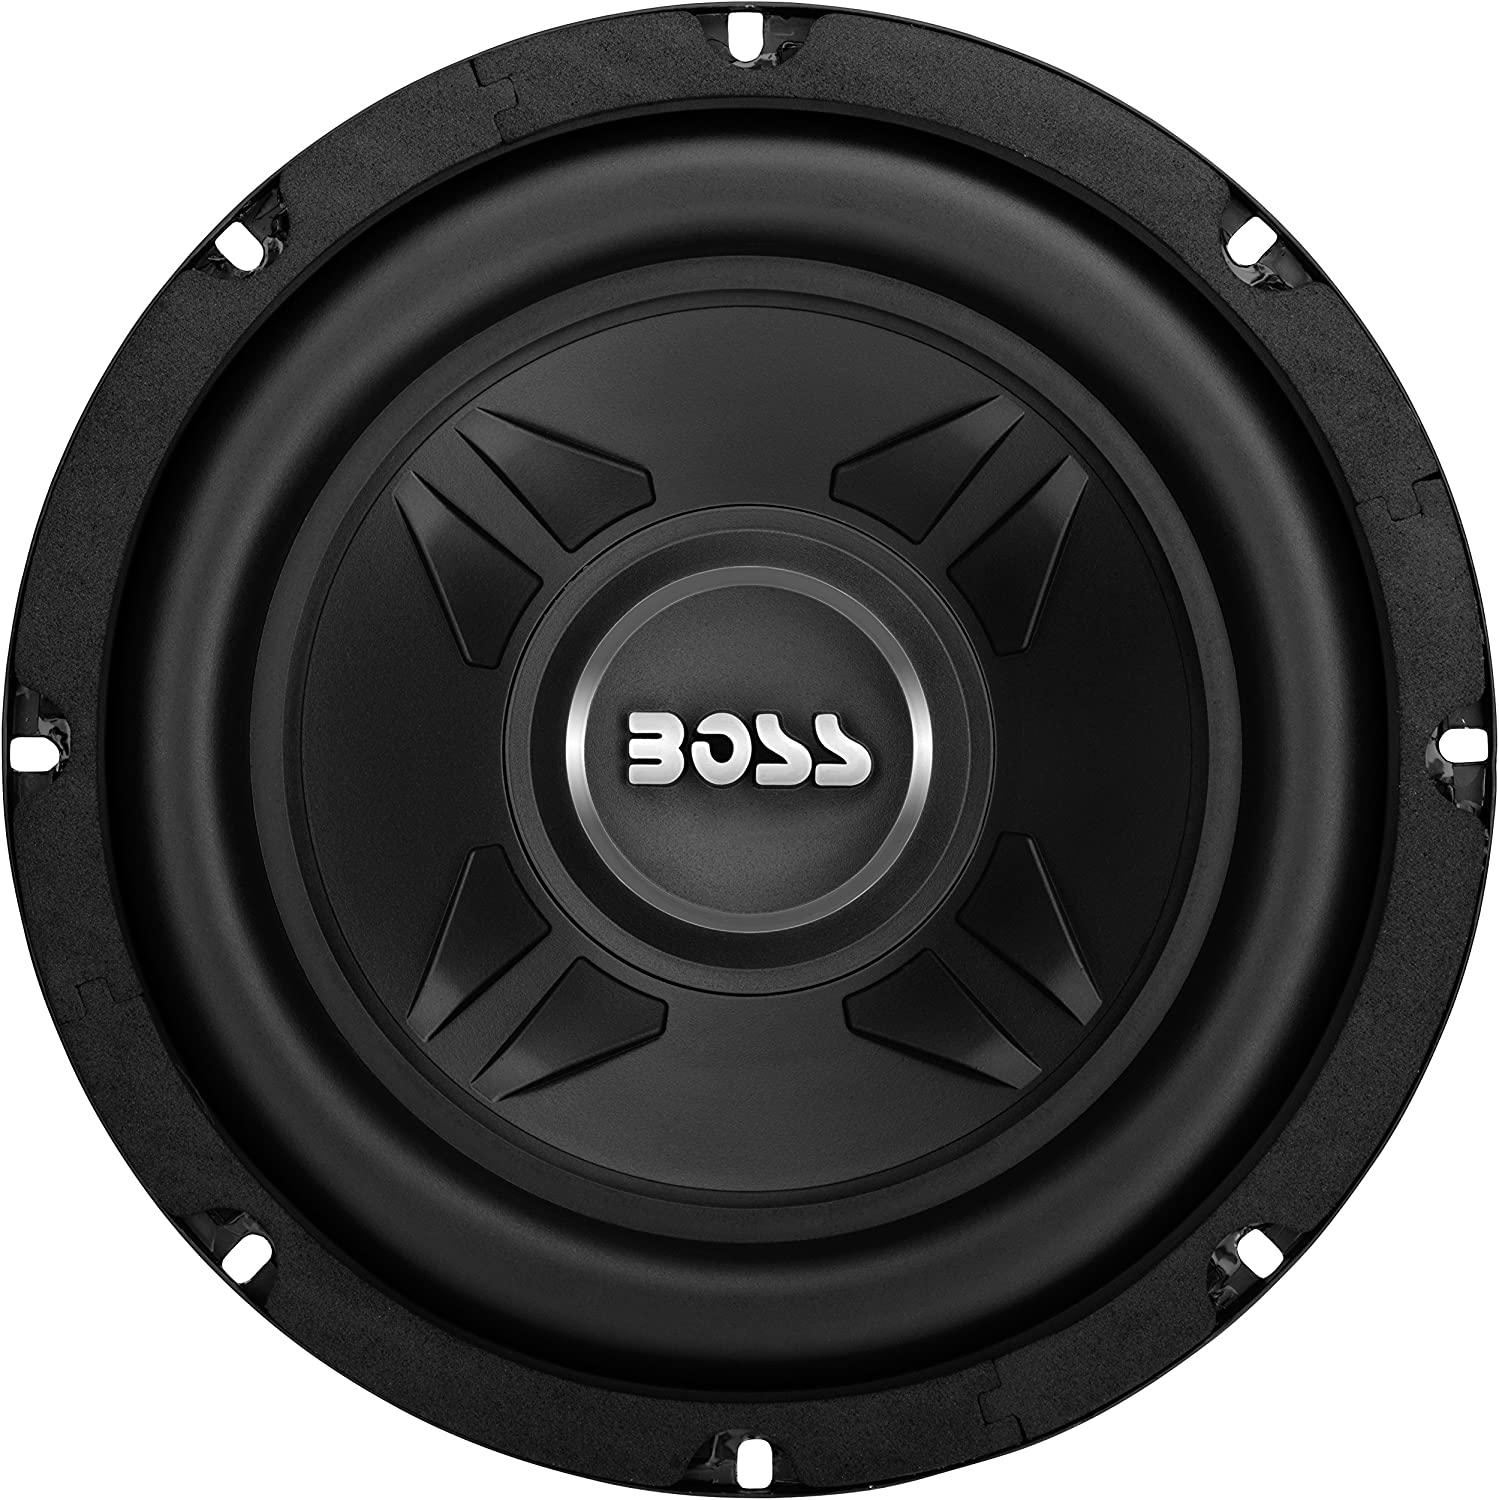 BOSS Audio Subwoofer